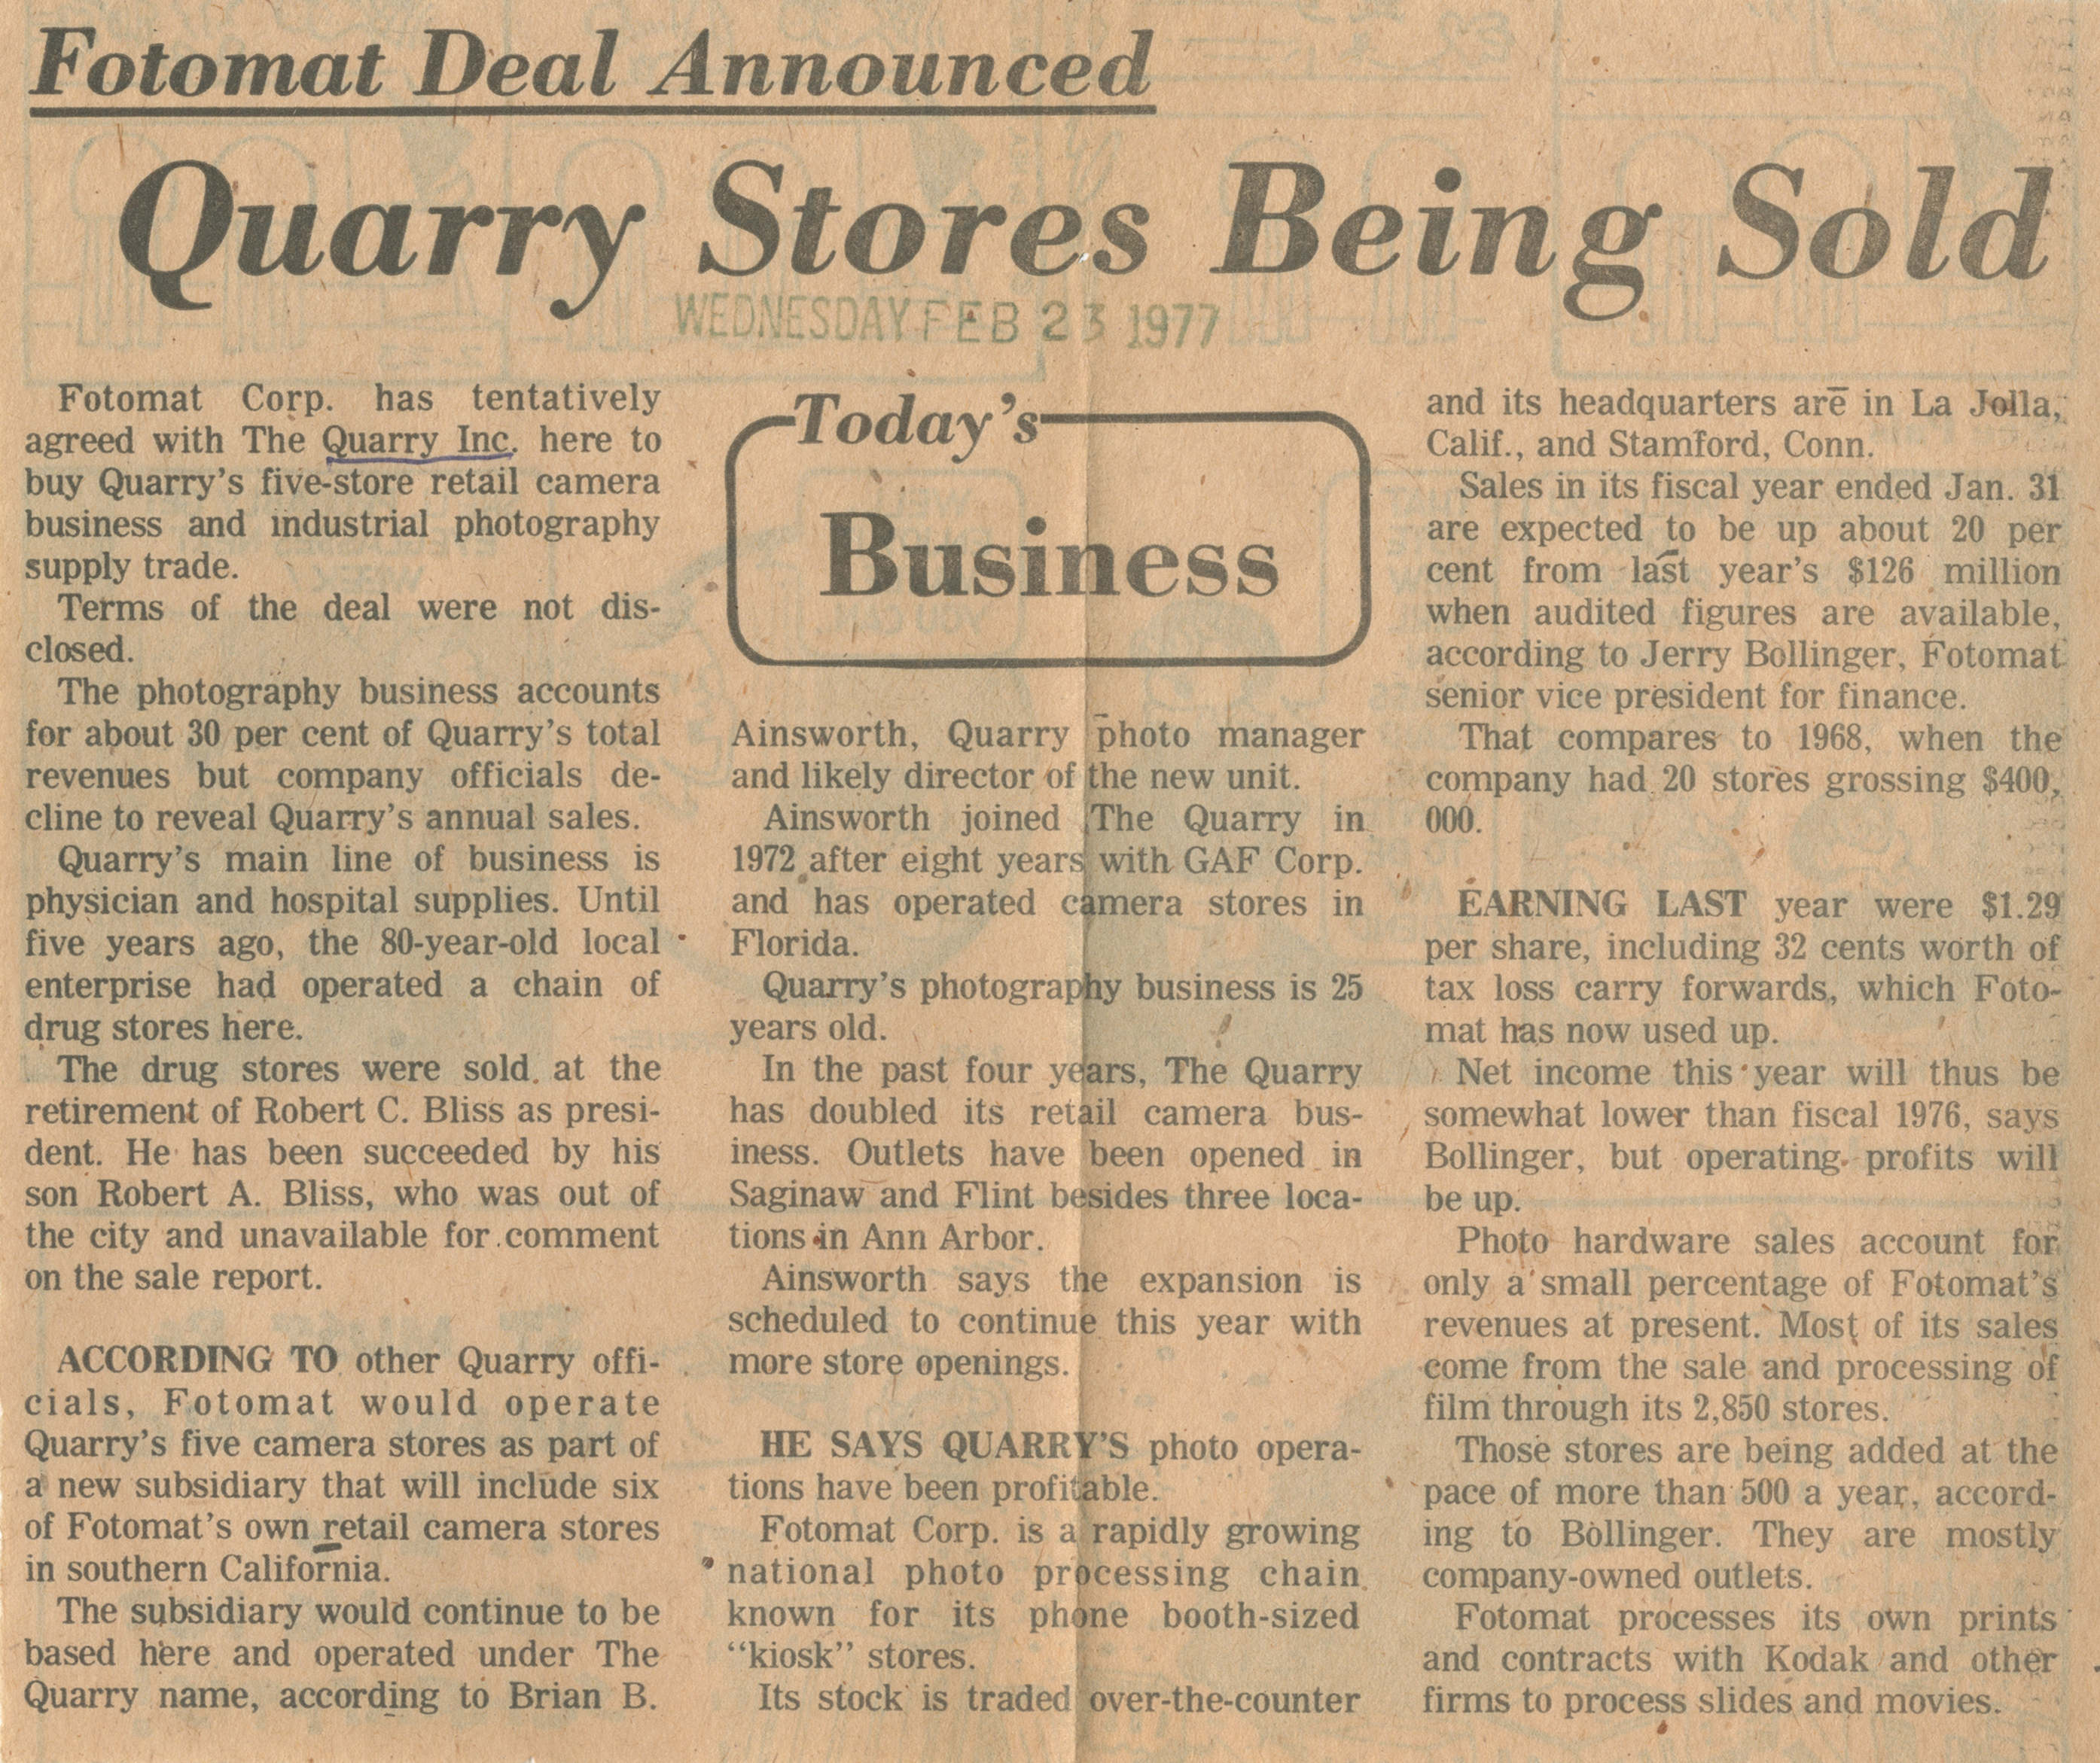 Fotomat Deal Announced: Quarry Stores Being Sold image